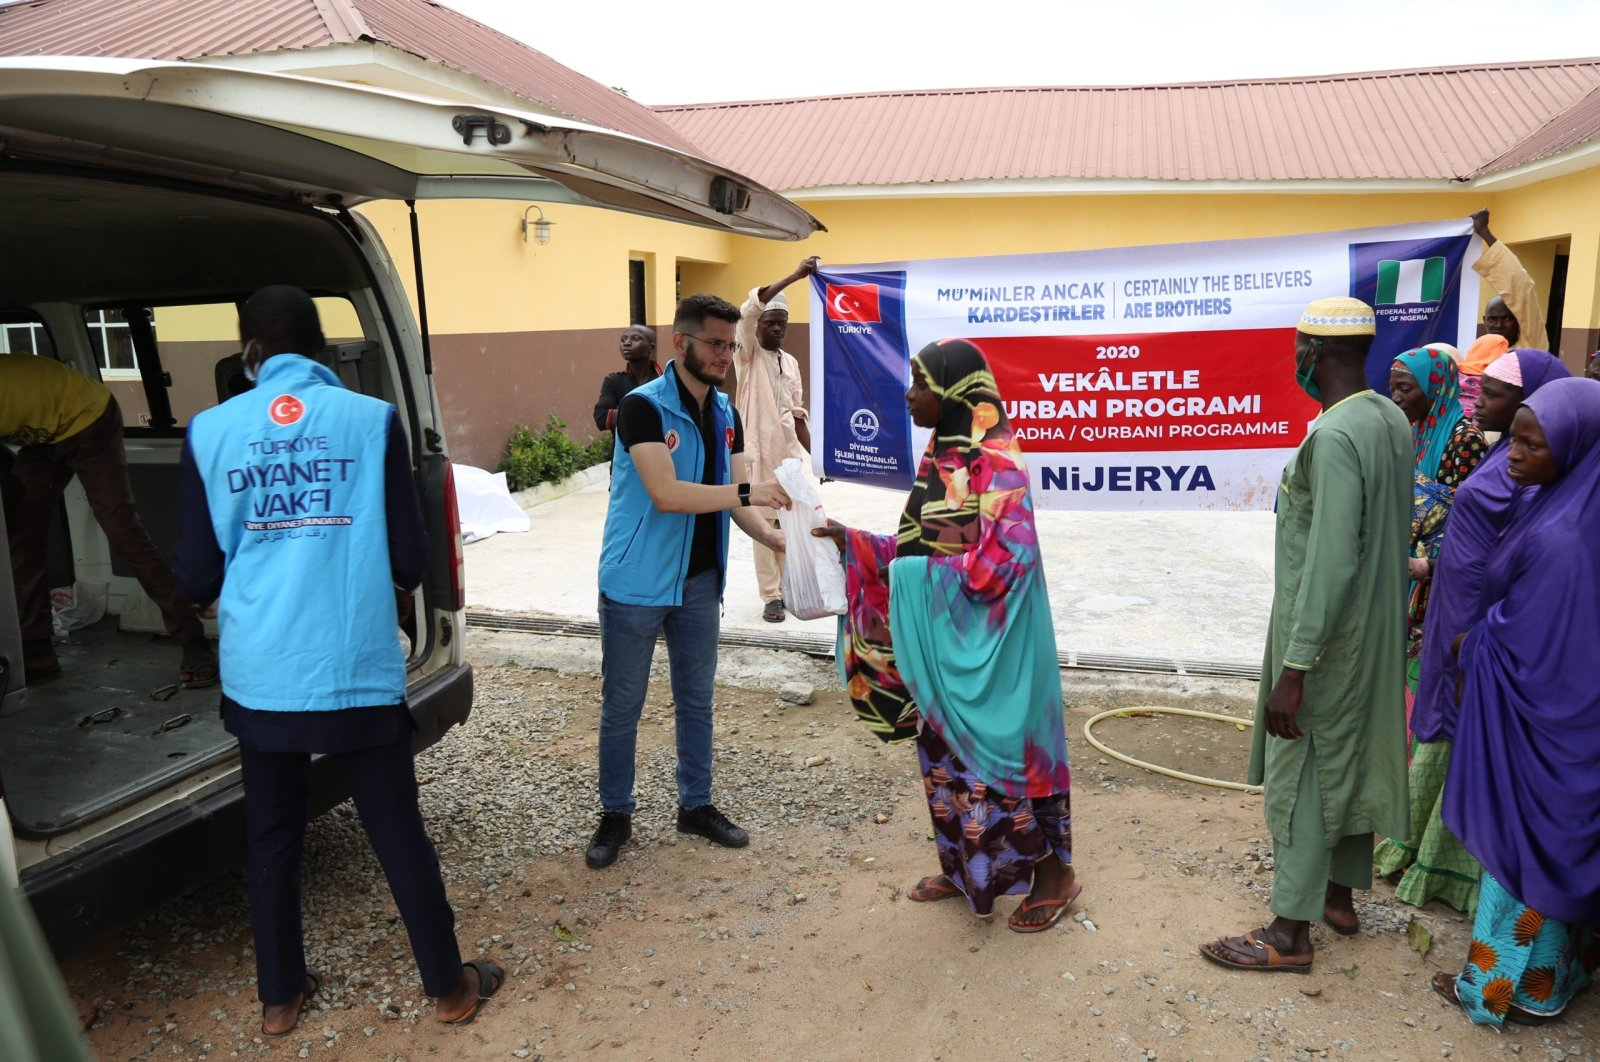 Volunteers from the Turkish Diyanet Foundation (TDV) deliver meat aid to locals, in Abuja, Nigeria, July 31, 2020. (COURTESY OF TDV)